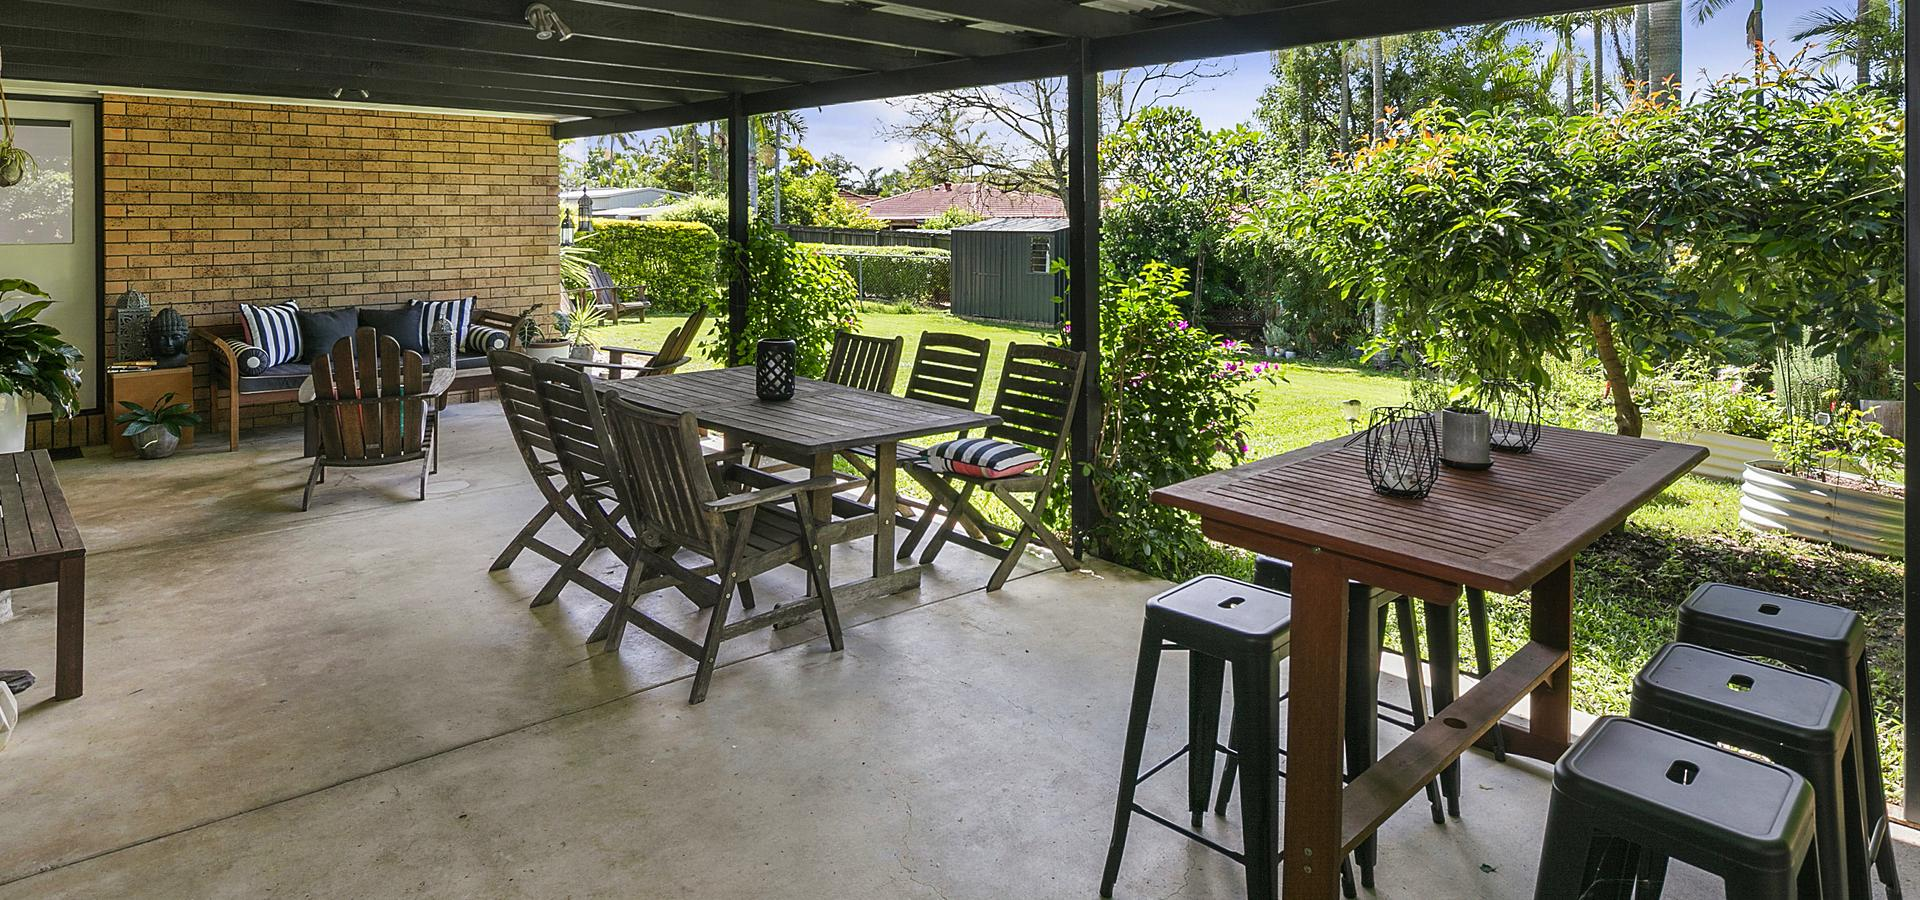 Renovated Family Home - The perfect backyard for the kids to enjoy